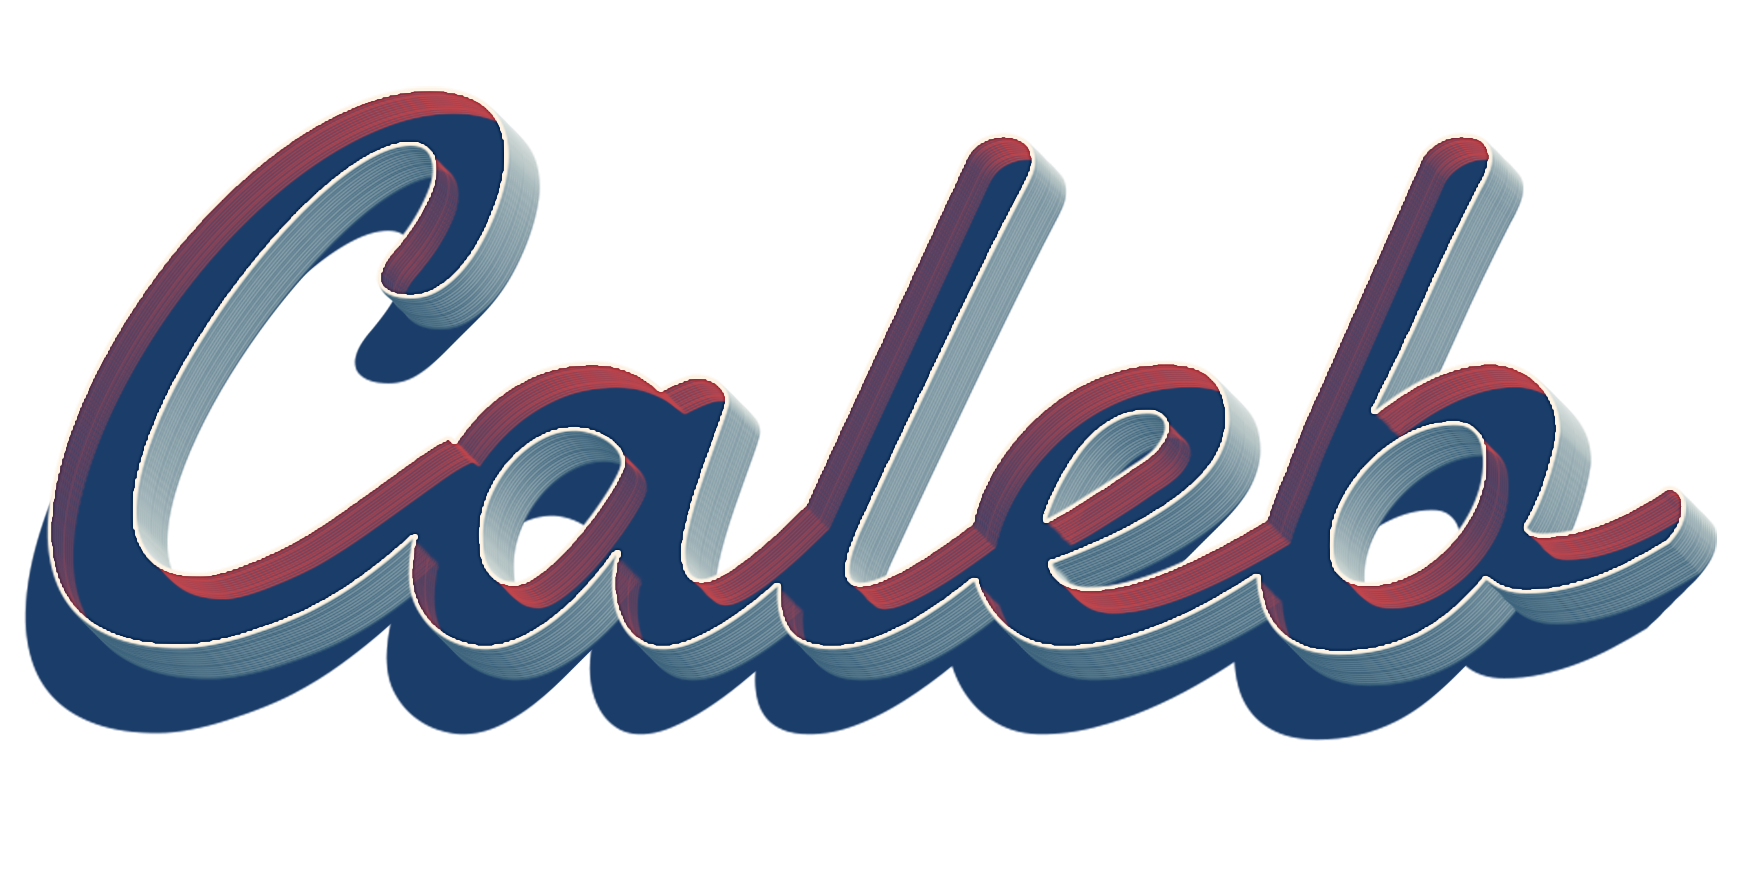 Caleb name clipart banner Caleb 3D Letter PNG Name banner